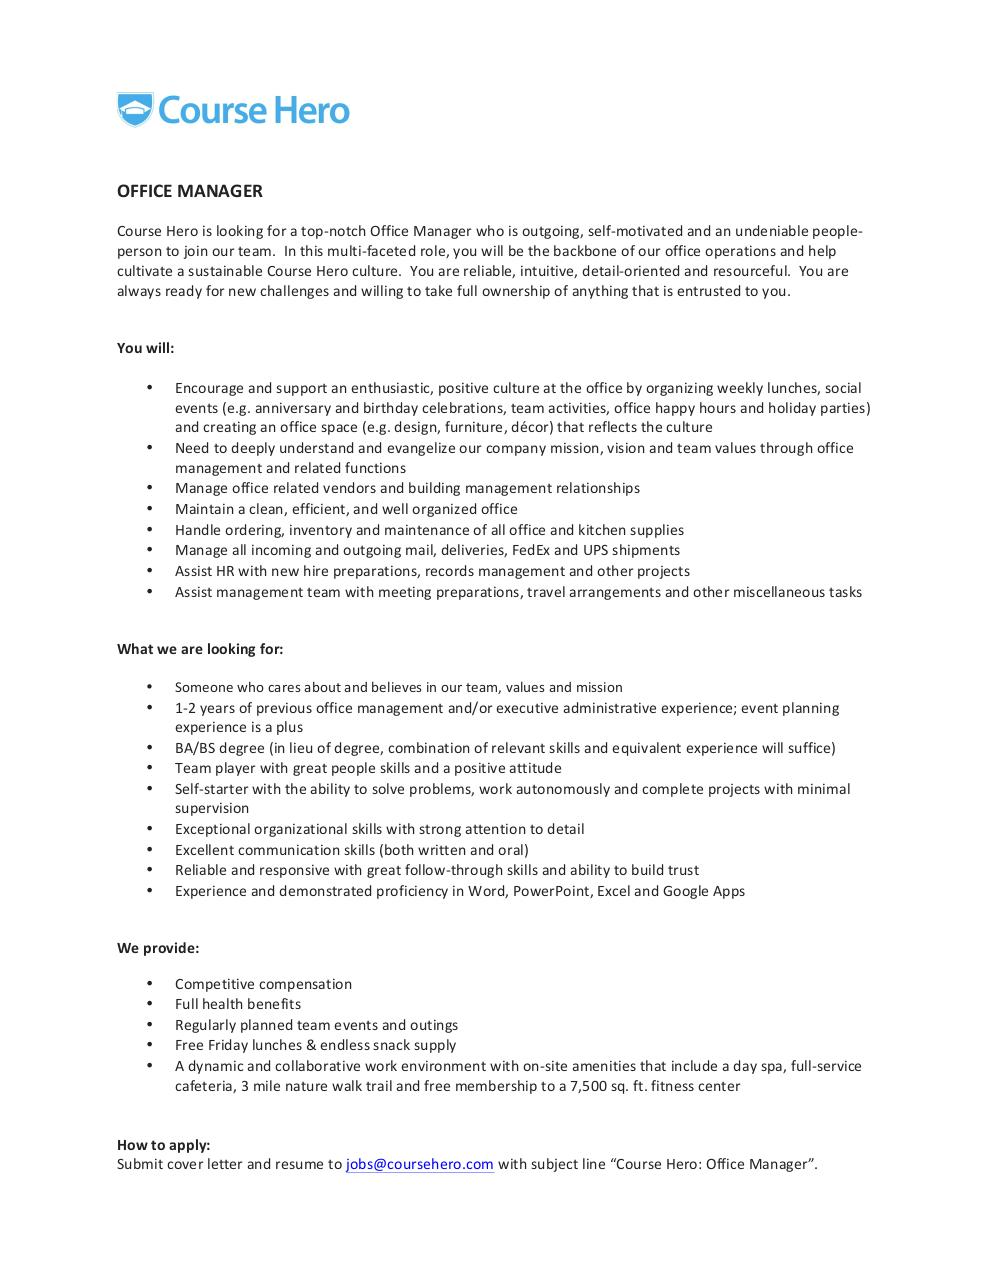 Office Manager Job Description docx by Vicki Choi - Office